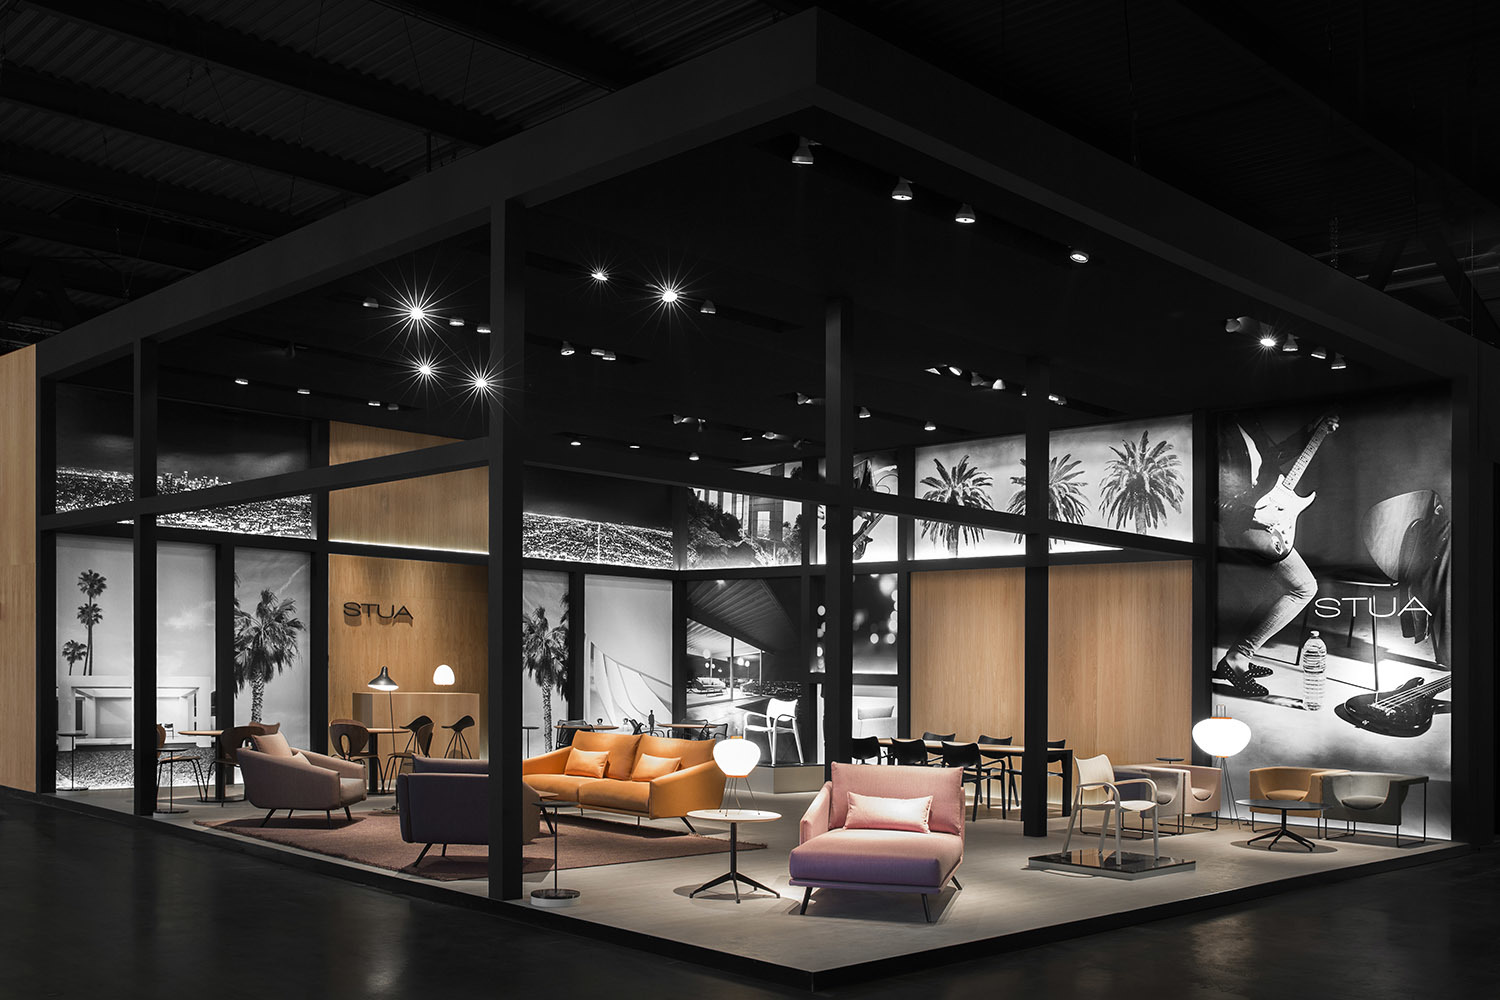 Salone del mobile 2018 show of creativity luxury and for Salone internazionale del mobile milano